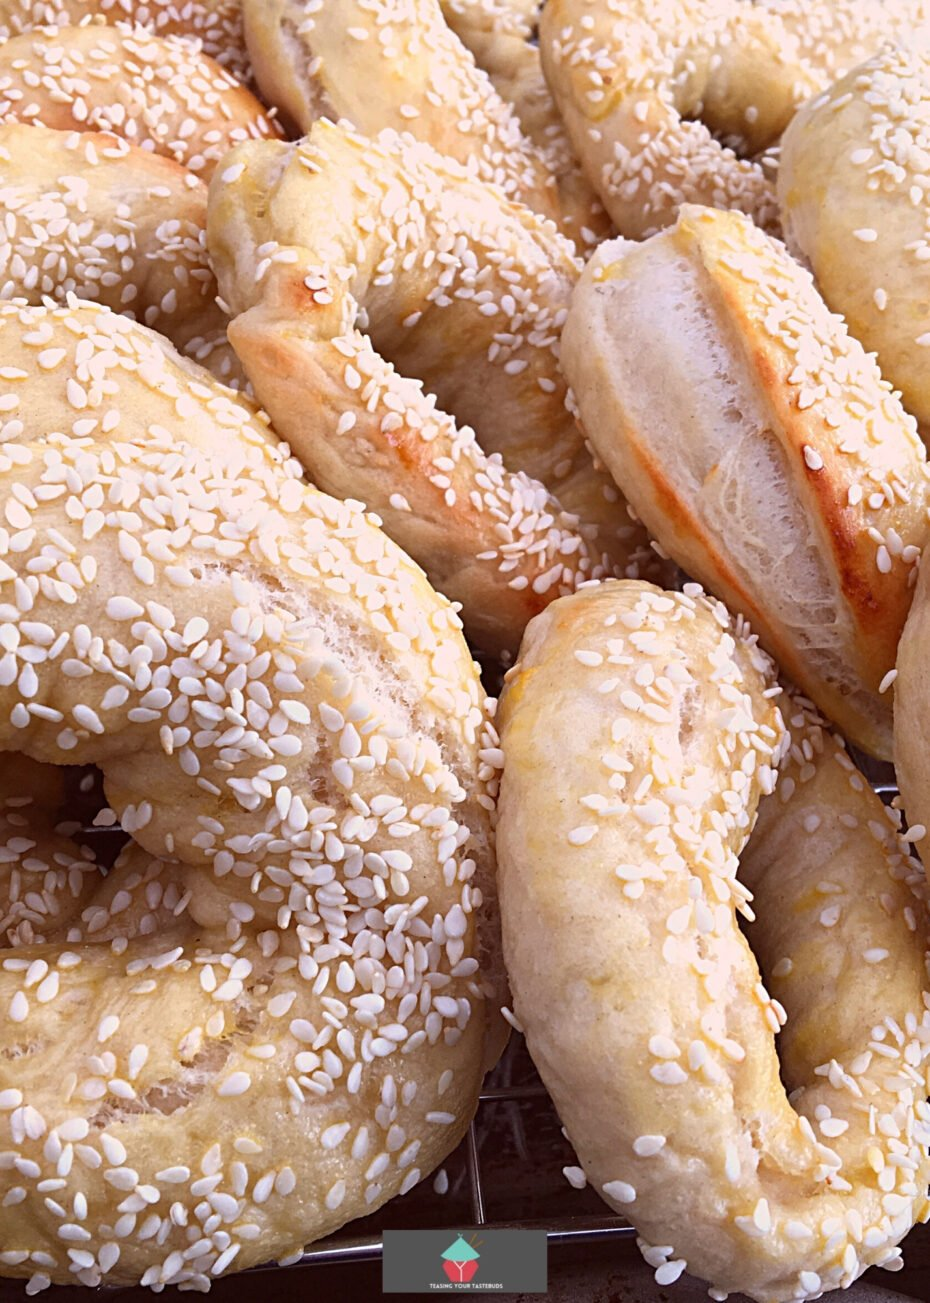 Montreal Style Bagels, delicious homemade bagels. A wonderful soft bread, sweetened with honey and topped with sesame seeds. Easy instructions and freezer friendly too!